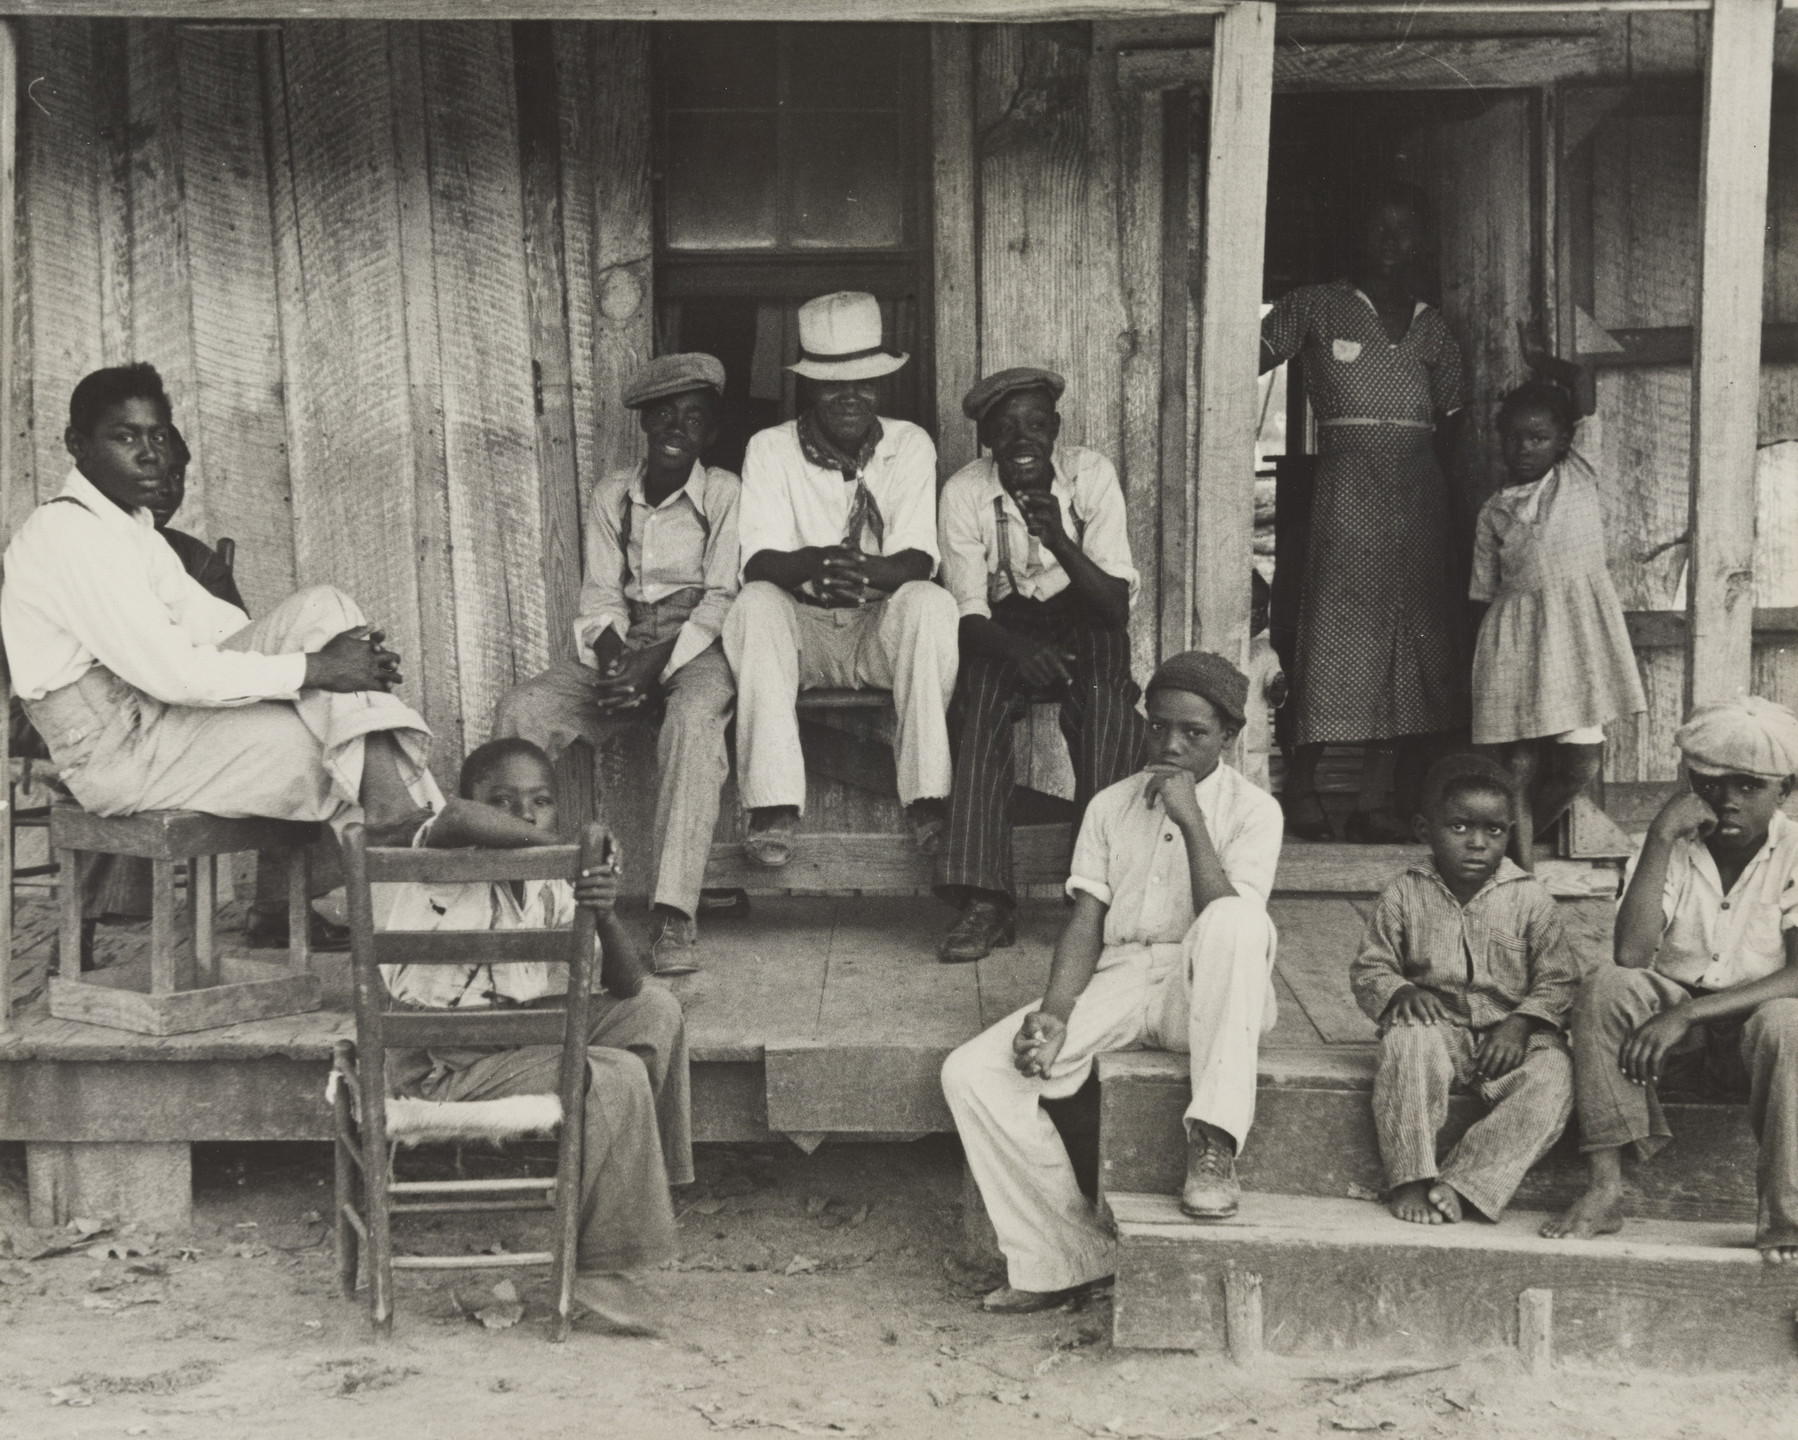 Ben Shahn. Sharecropper's Children, Arkansas. 1935